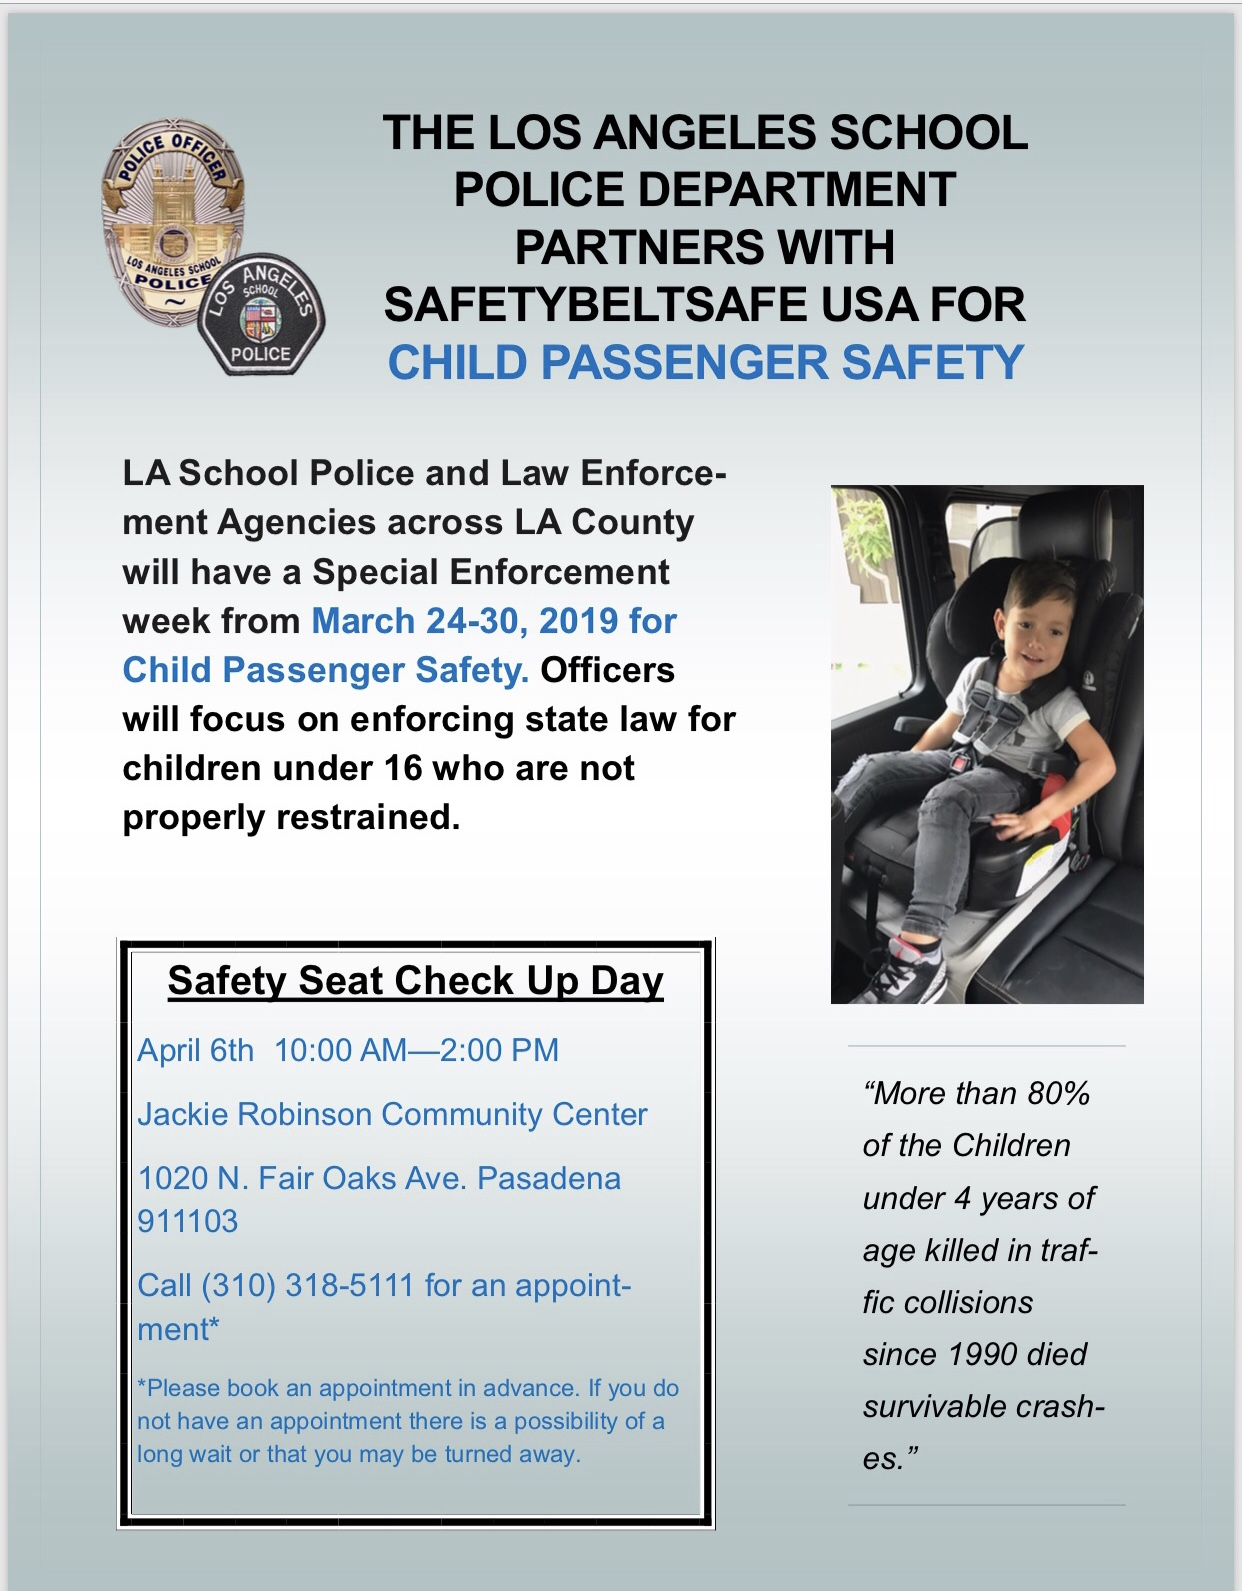 LASPD Partners with Safety Belt Safe USA for Child Passenger Safety